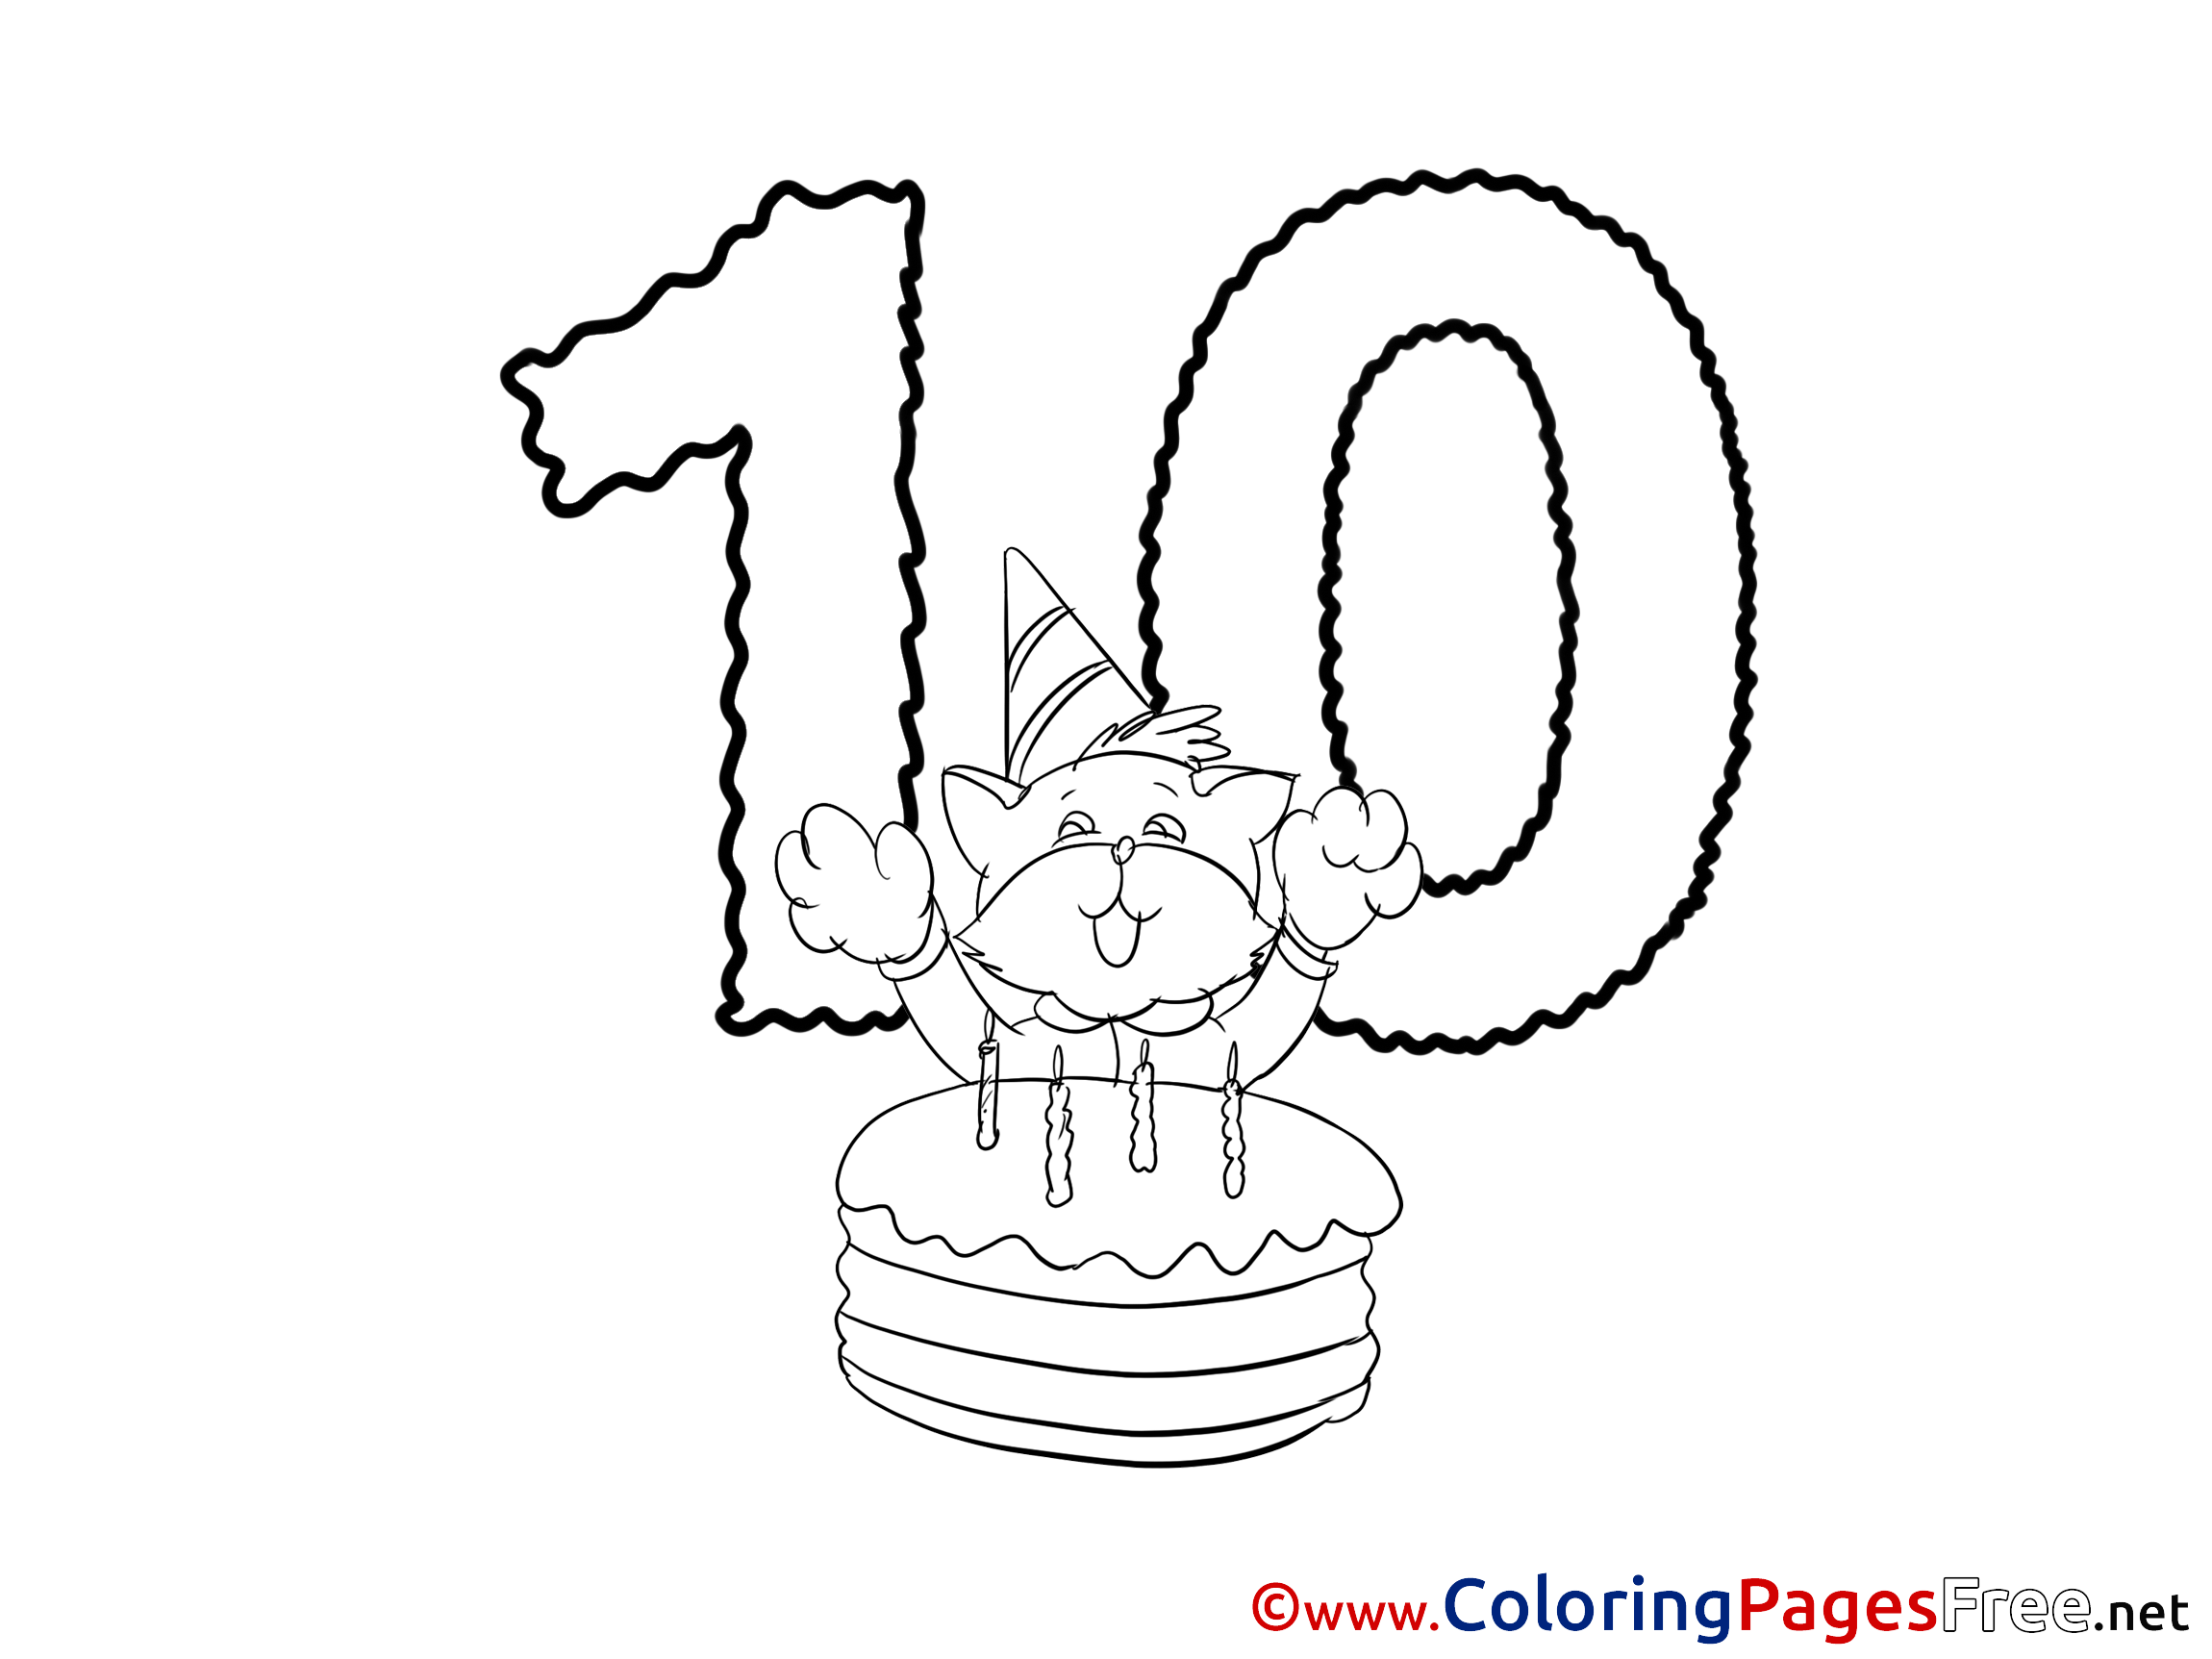 happy birthday cat coloring page cat 10 years happy birthday colouring sheet free cat birthday page happy coloring